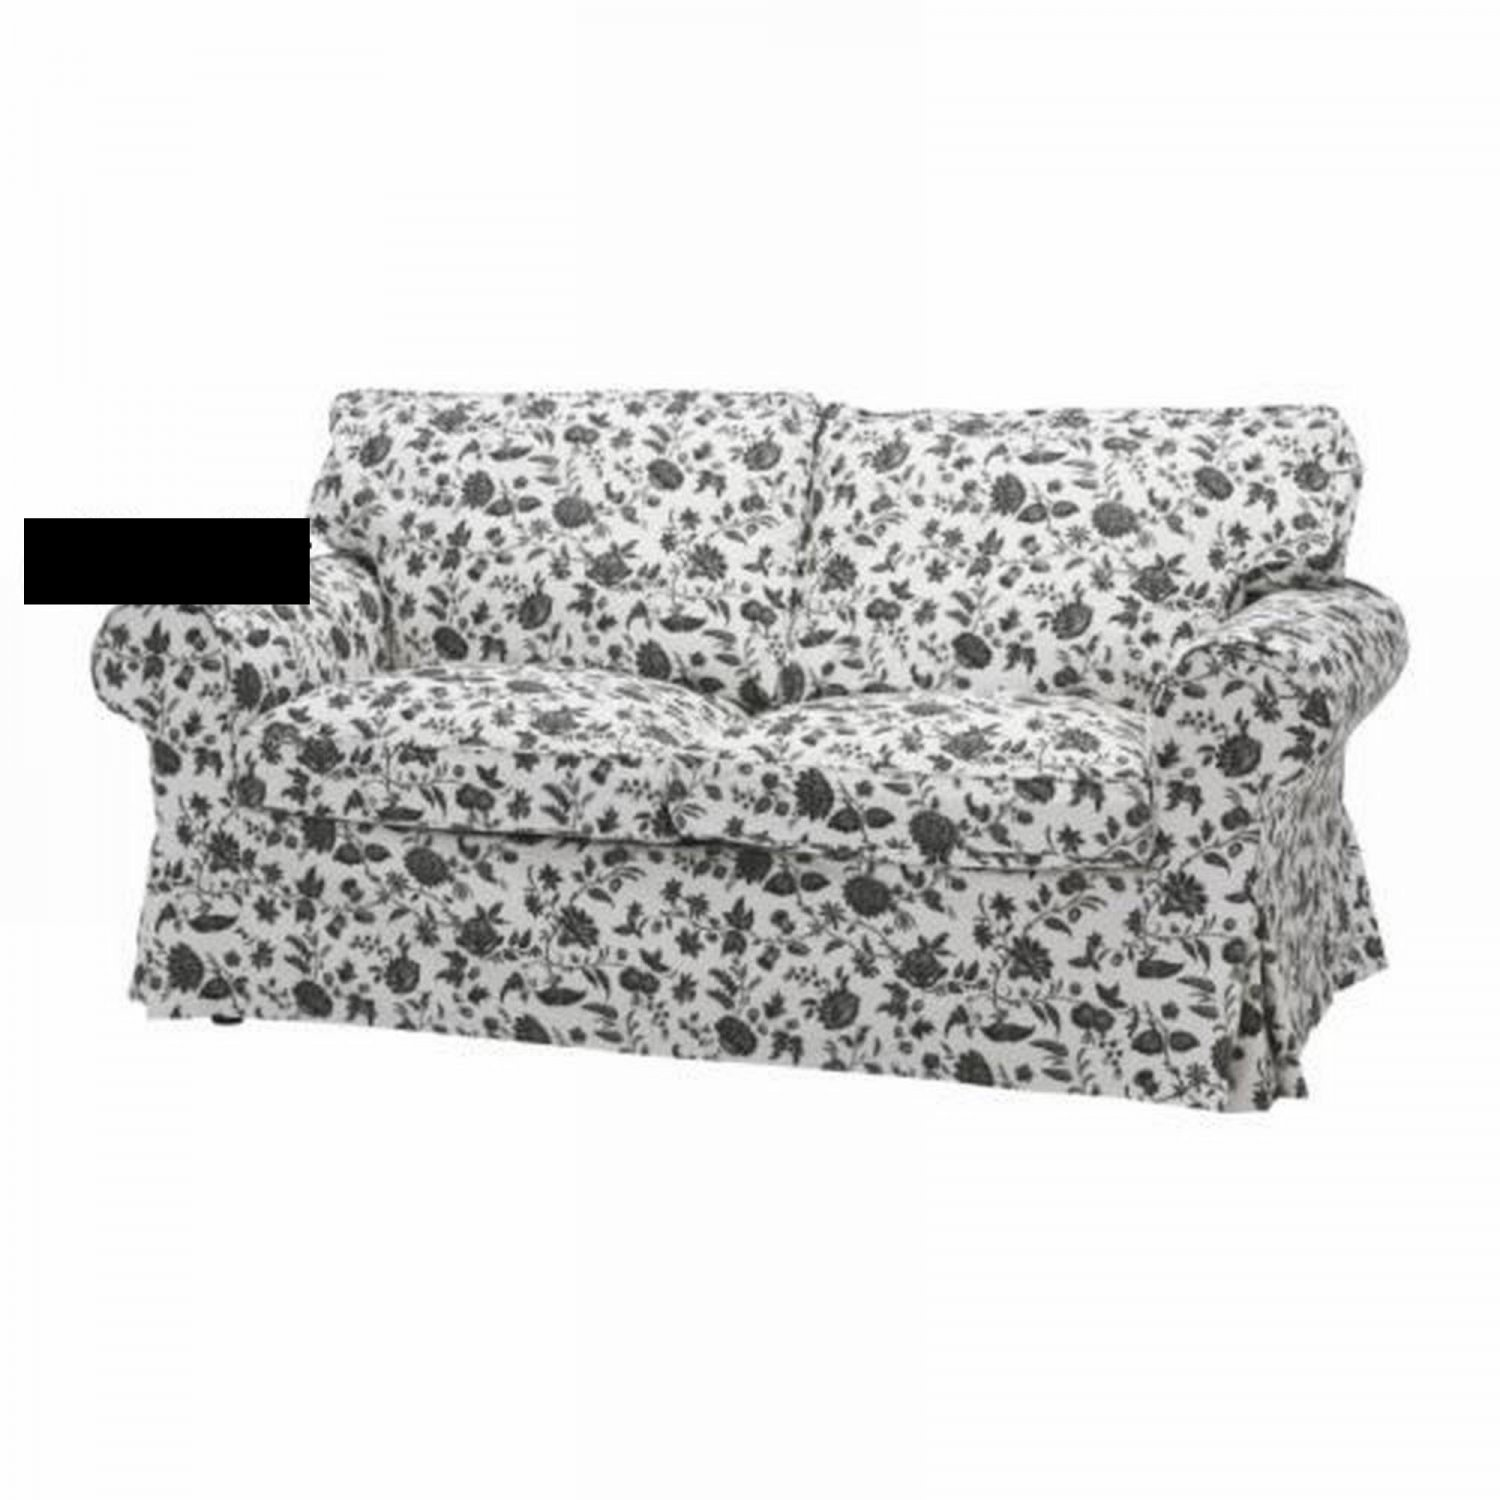 Ikea Ektorp Sofa Bed Cover Hovby Black White Bettsofa